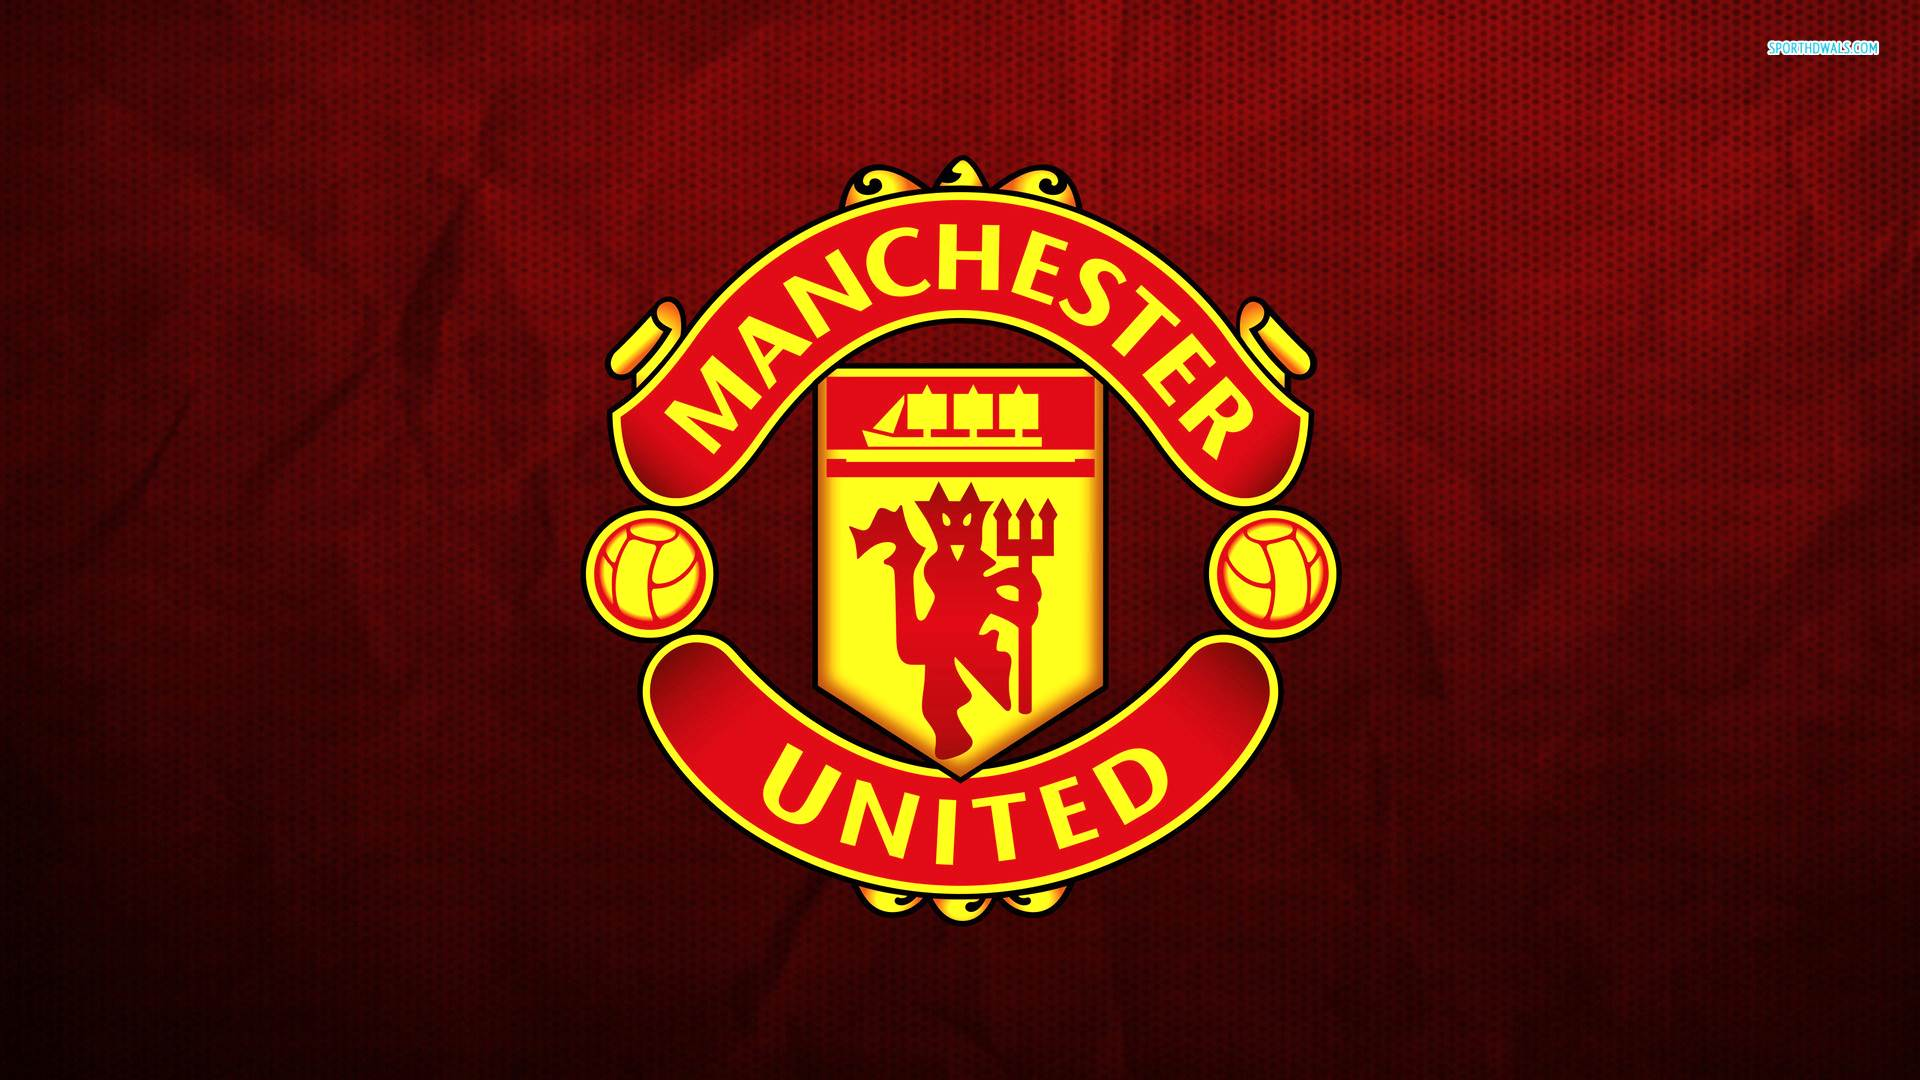 manchester united hd wallpapers 2017 wallpaper cave